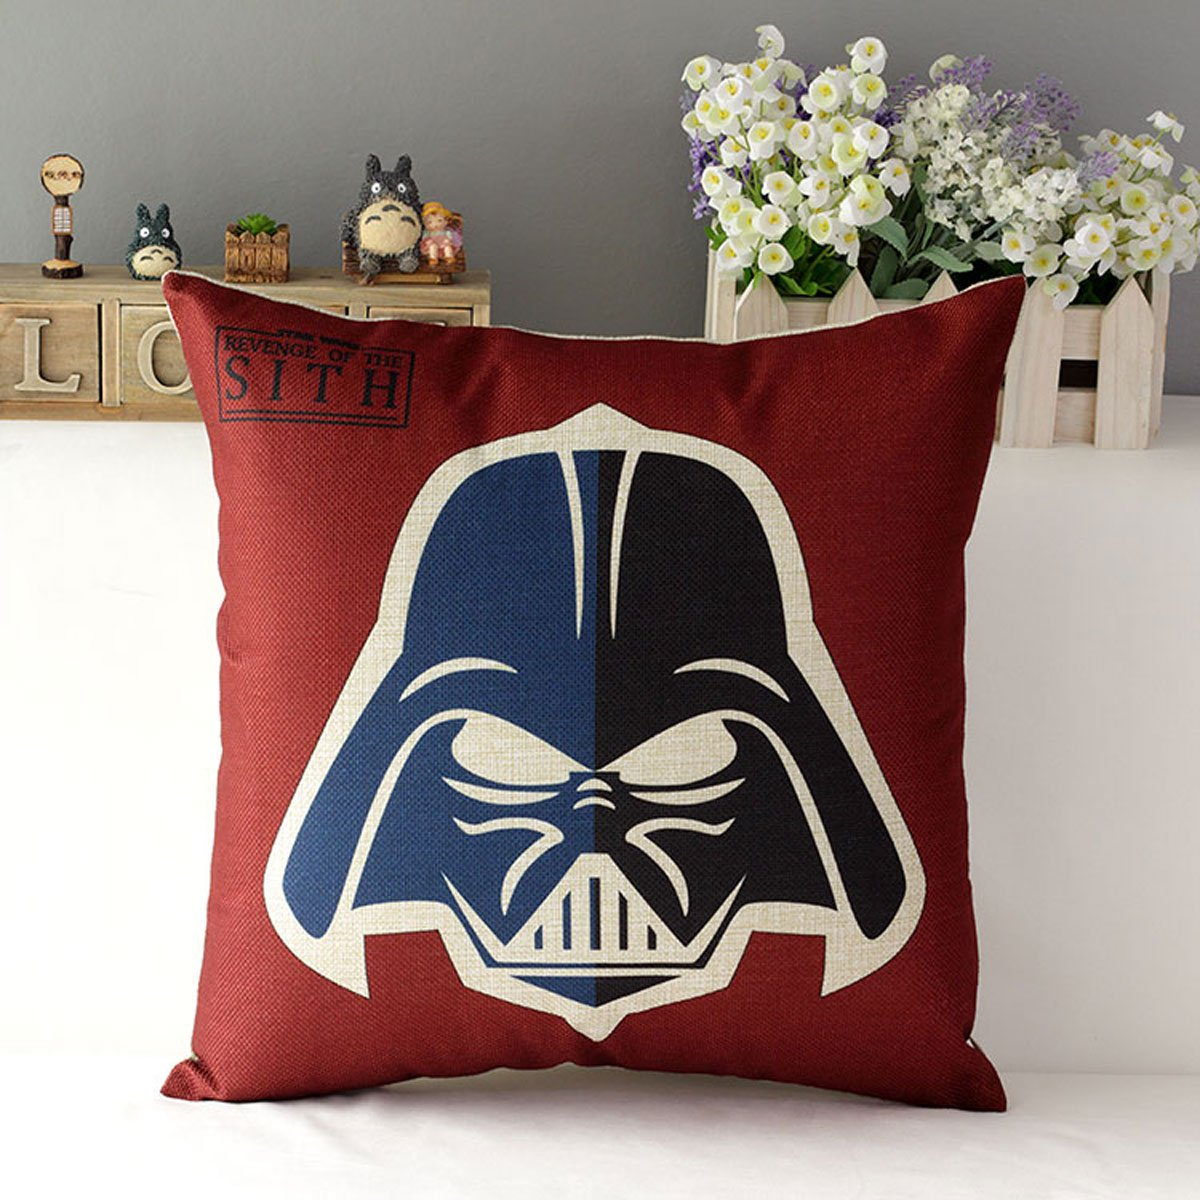 Admirable Tavasdecor 17 Star Wars Home Sofa Chair Couch Decorative Throw Pillow Case Cushion Cover Darth Vader Anakin Skywalker Creativecarmelina Interior Chair Design Creativecarmelinacom